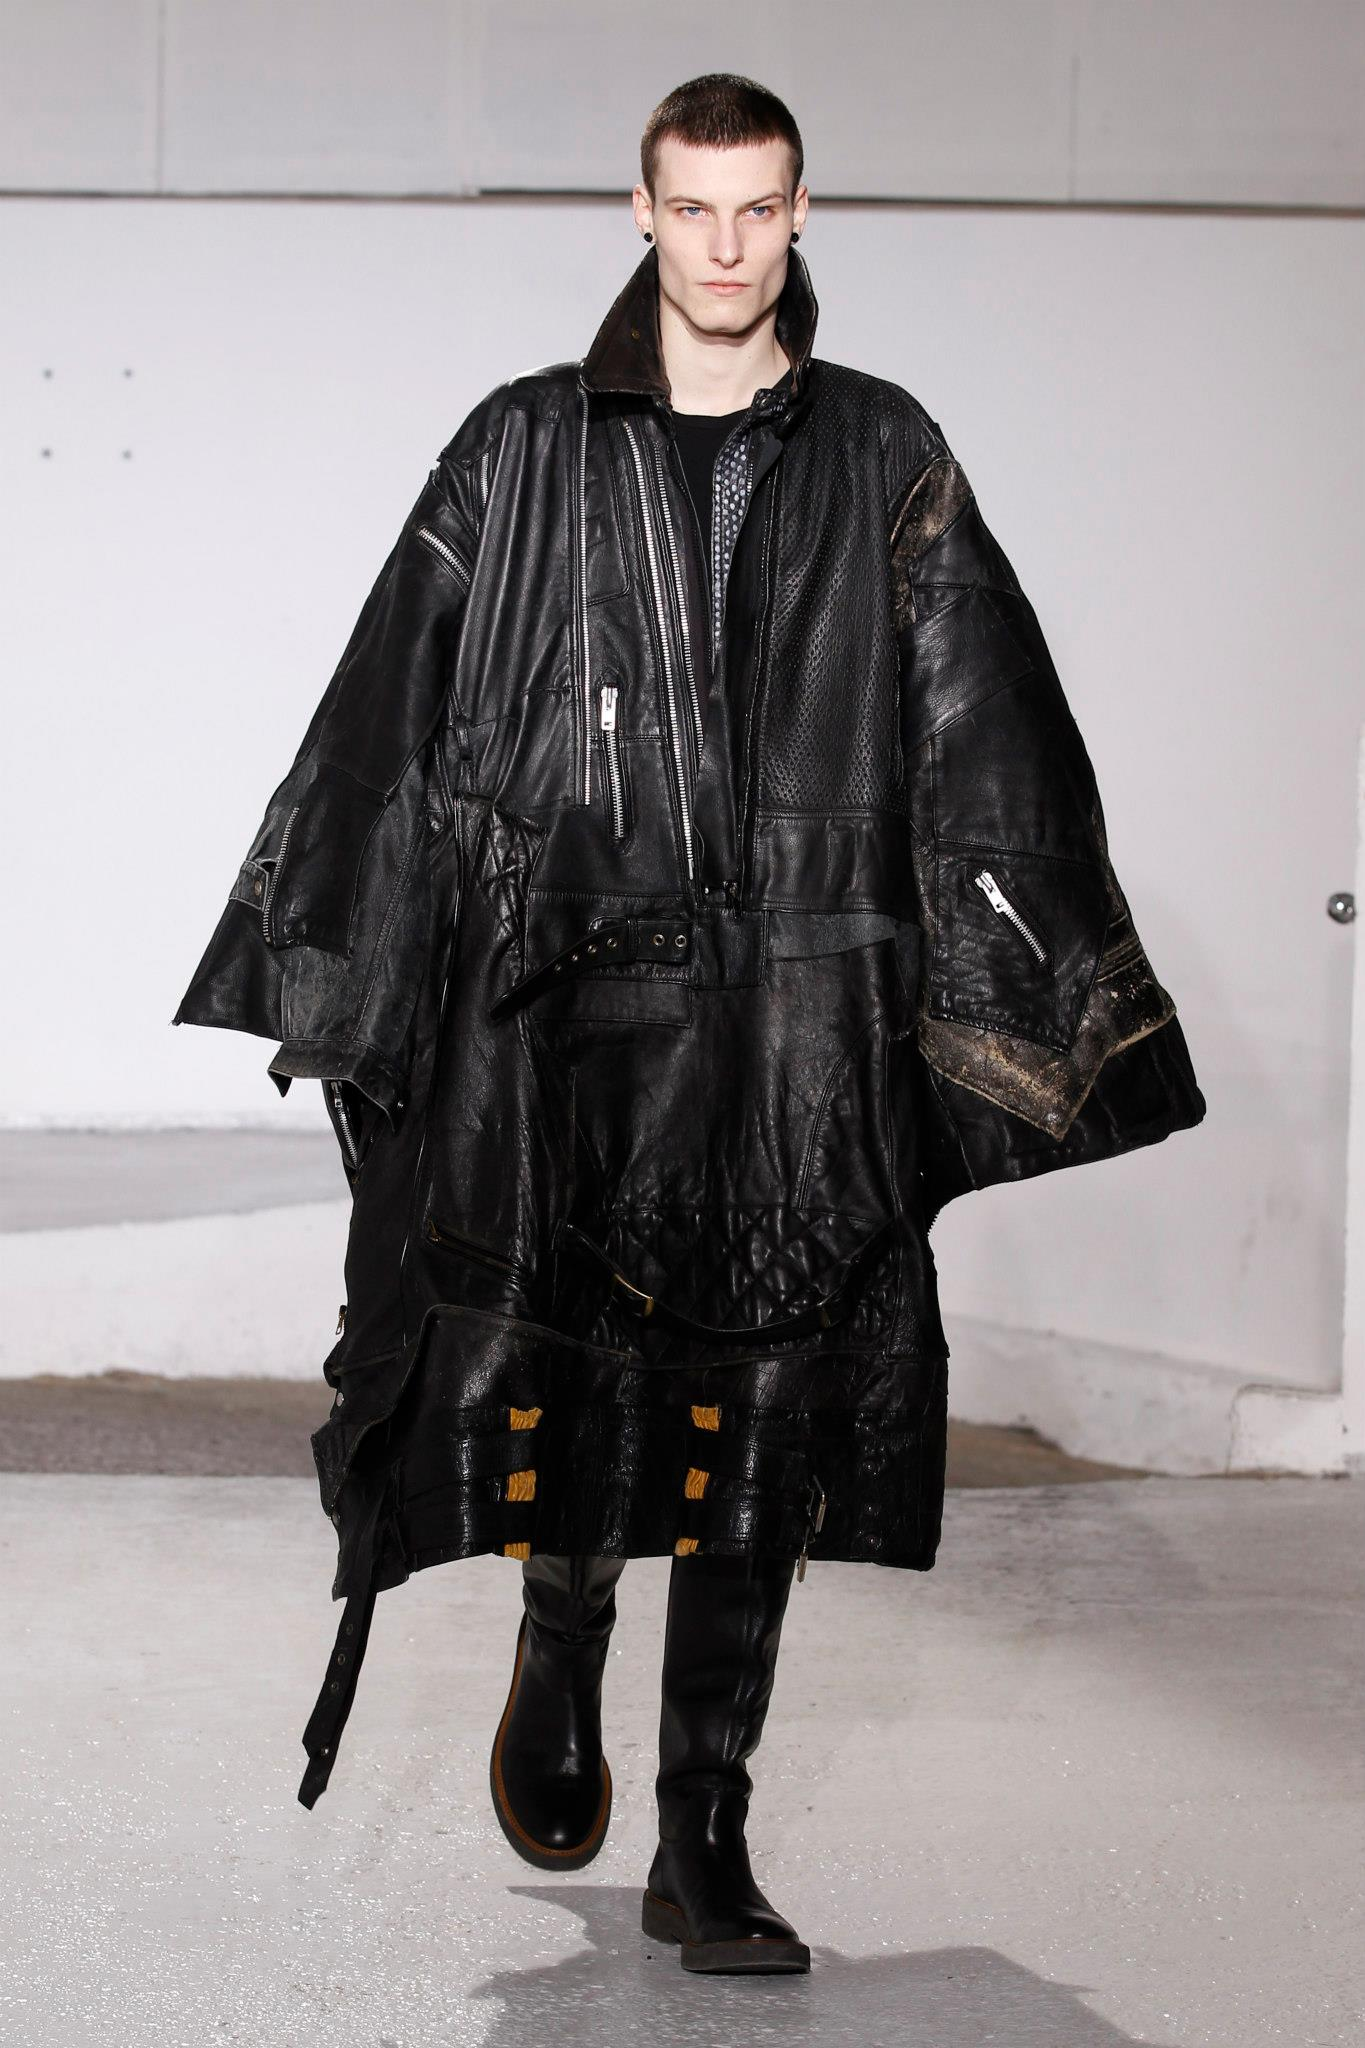 Maison martin margiela fall winter menswear collection for Fashion maison